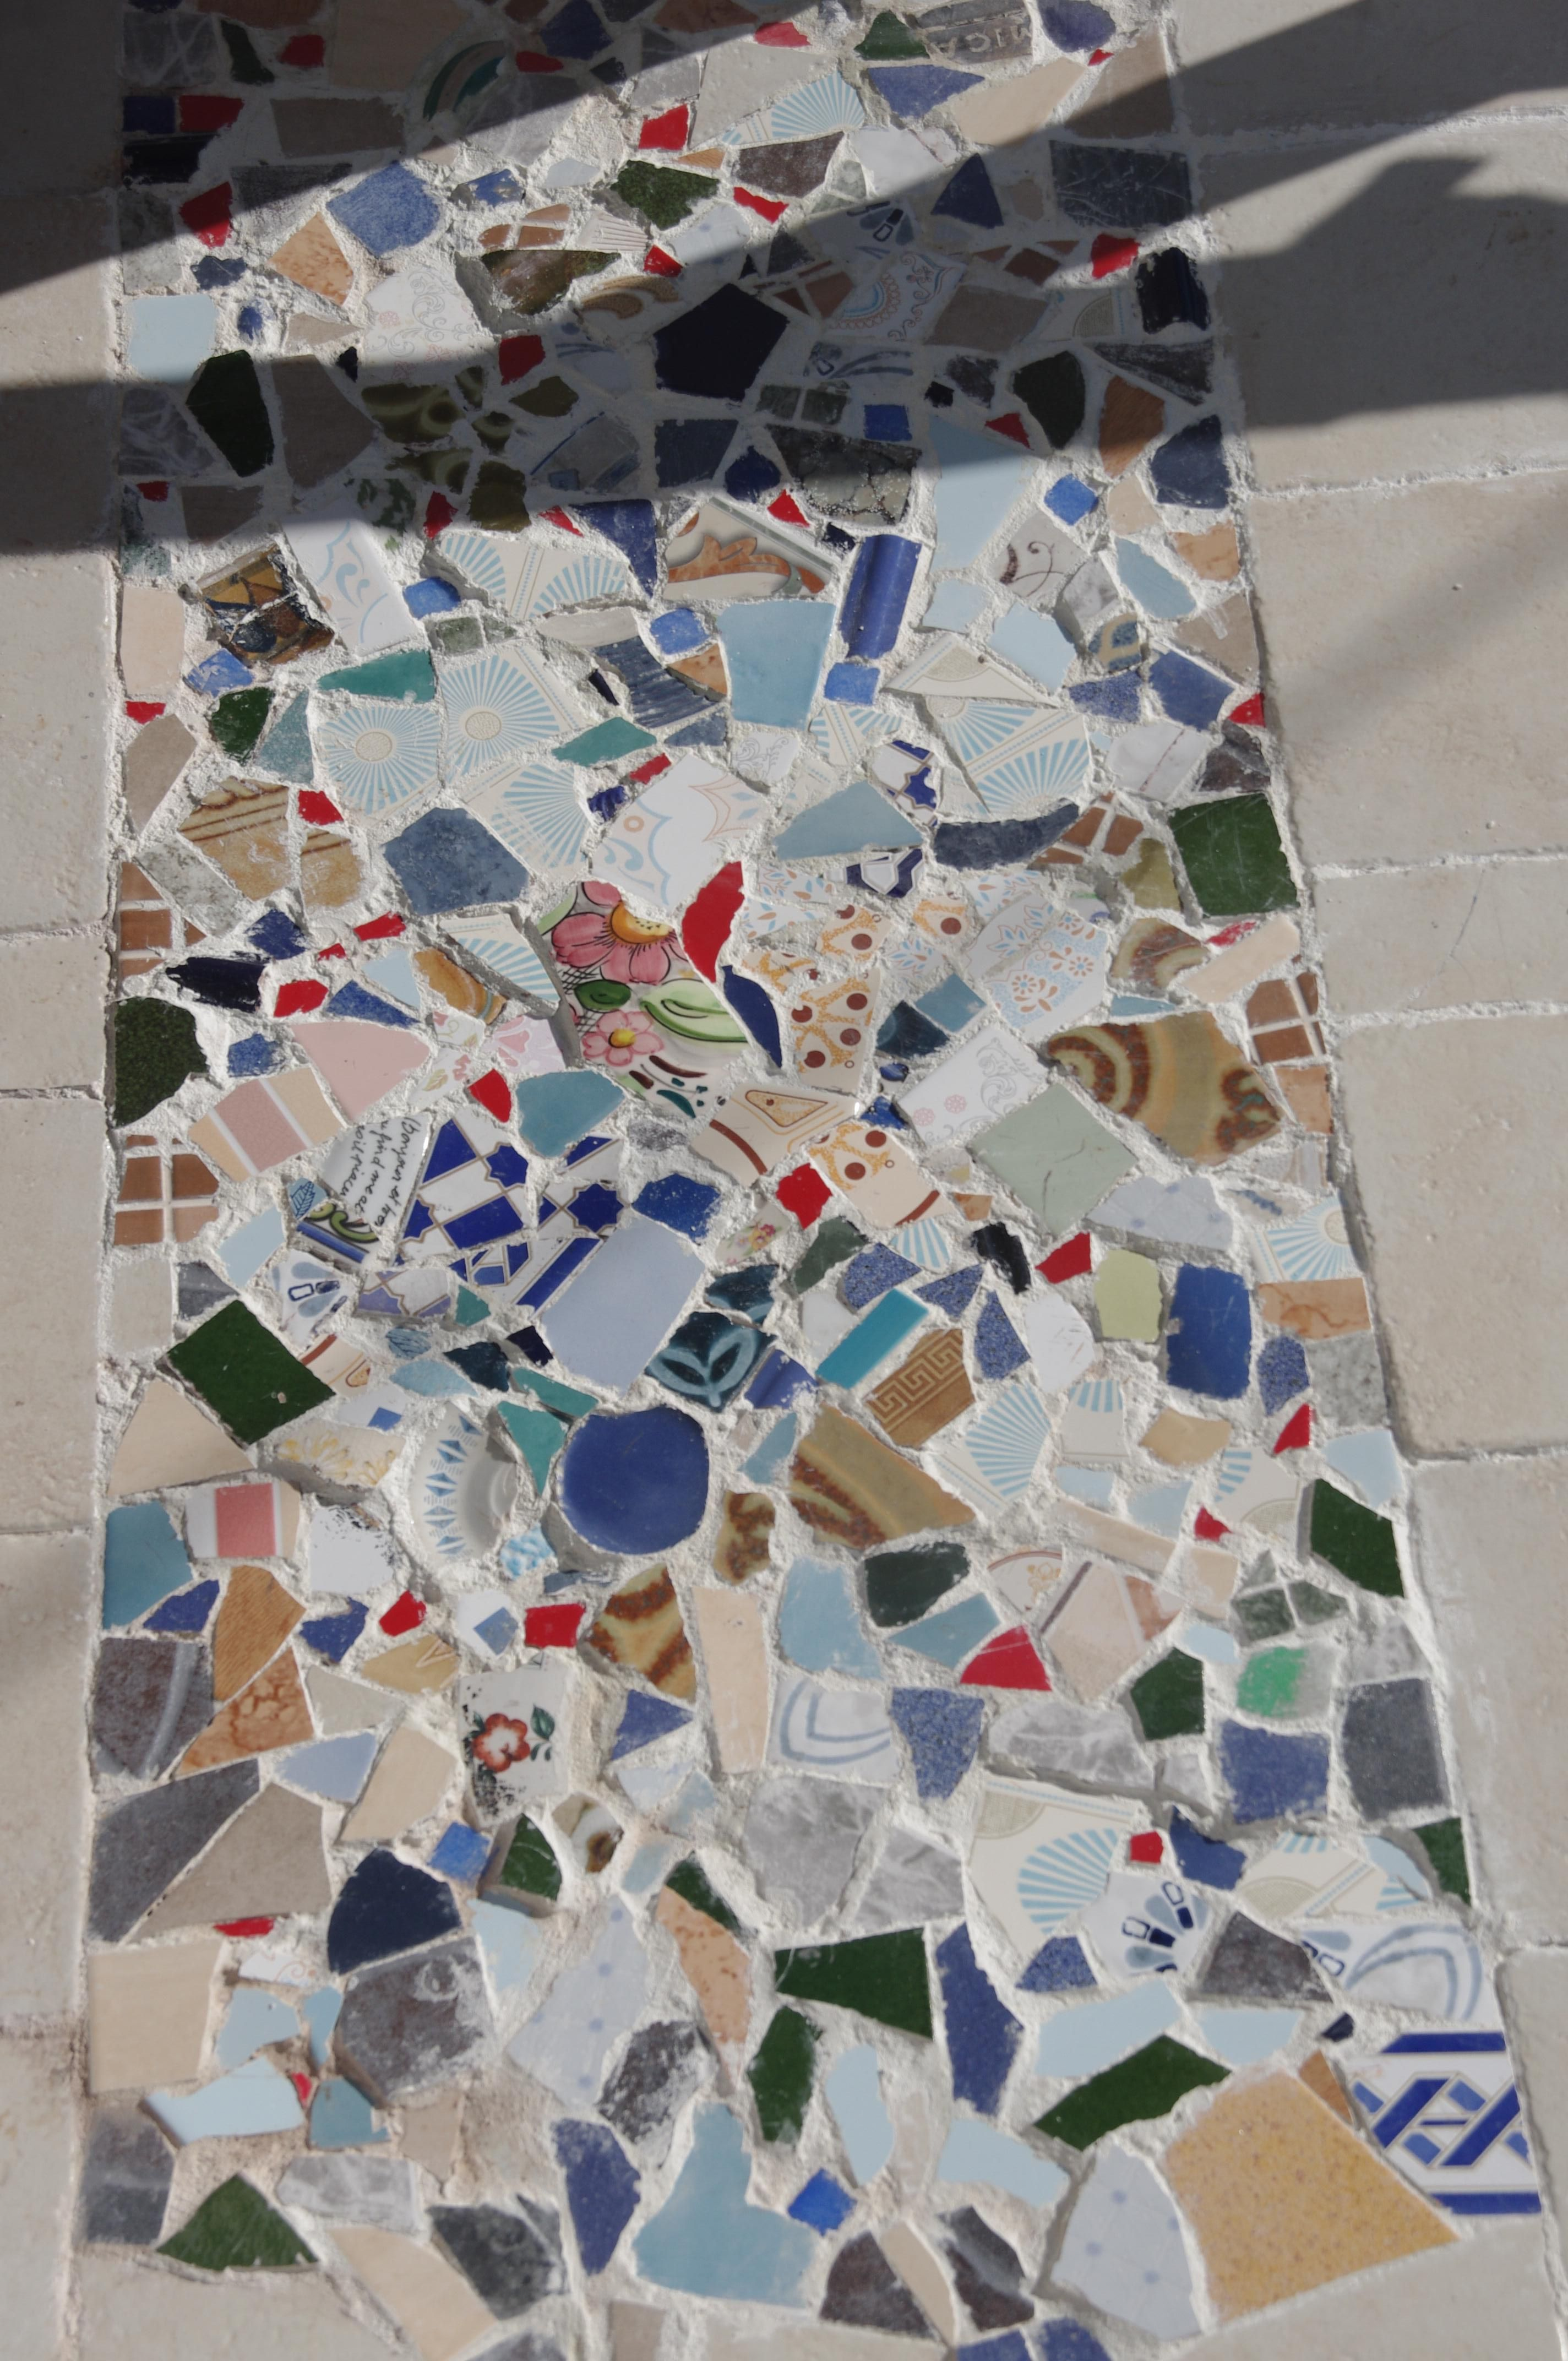 We made this mosaic with broken old tiles  at the home entrance floor we made this mosaic with broken old tiles  at the home entrance  . Entrance Floor Tiles Design Images. Home Design Ideas